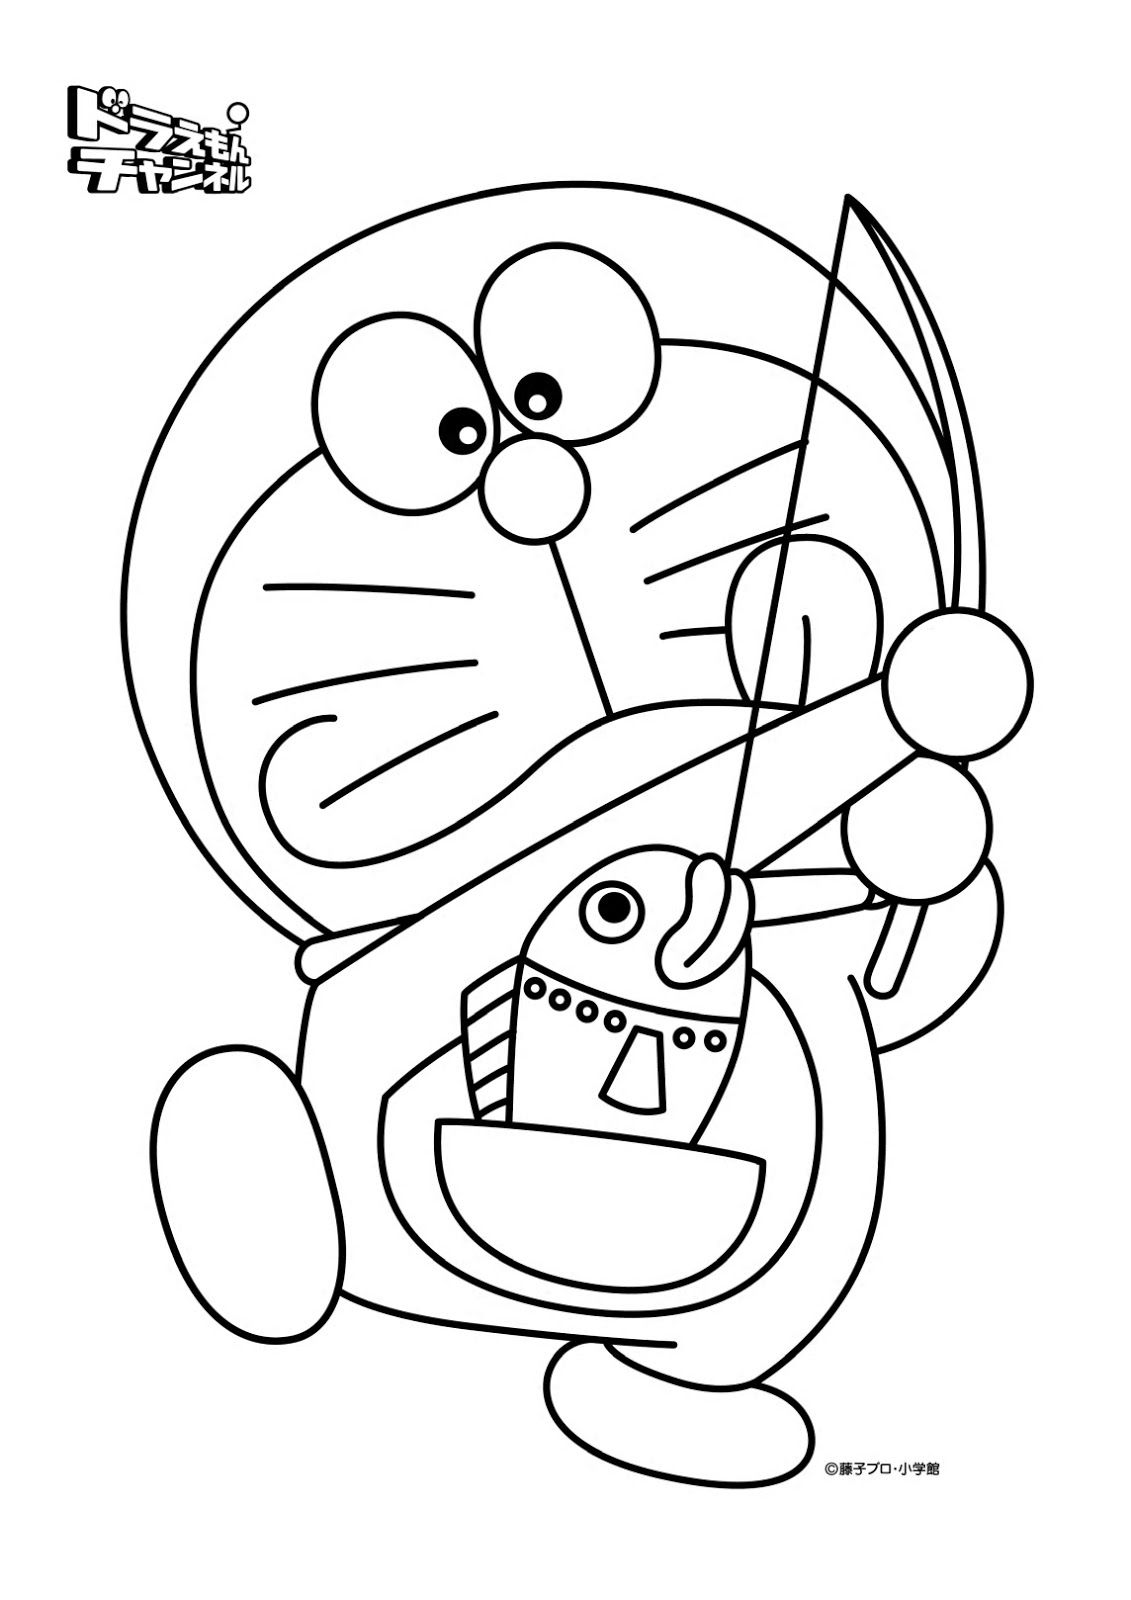 Mewarnai Gambar Doraemon 8 Dorawmon Doraemon Coloring Pages To